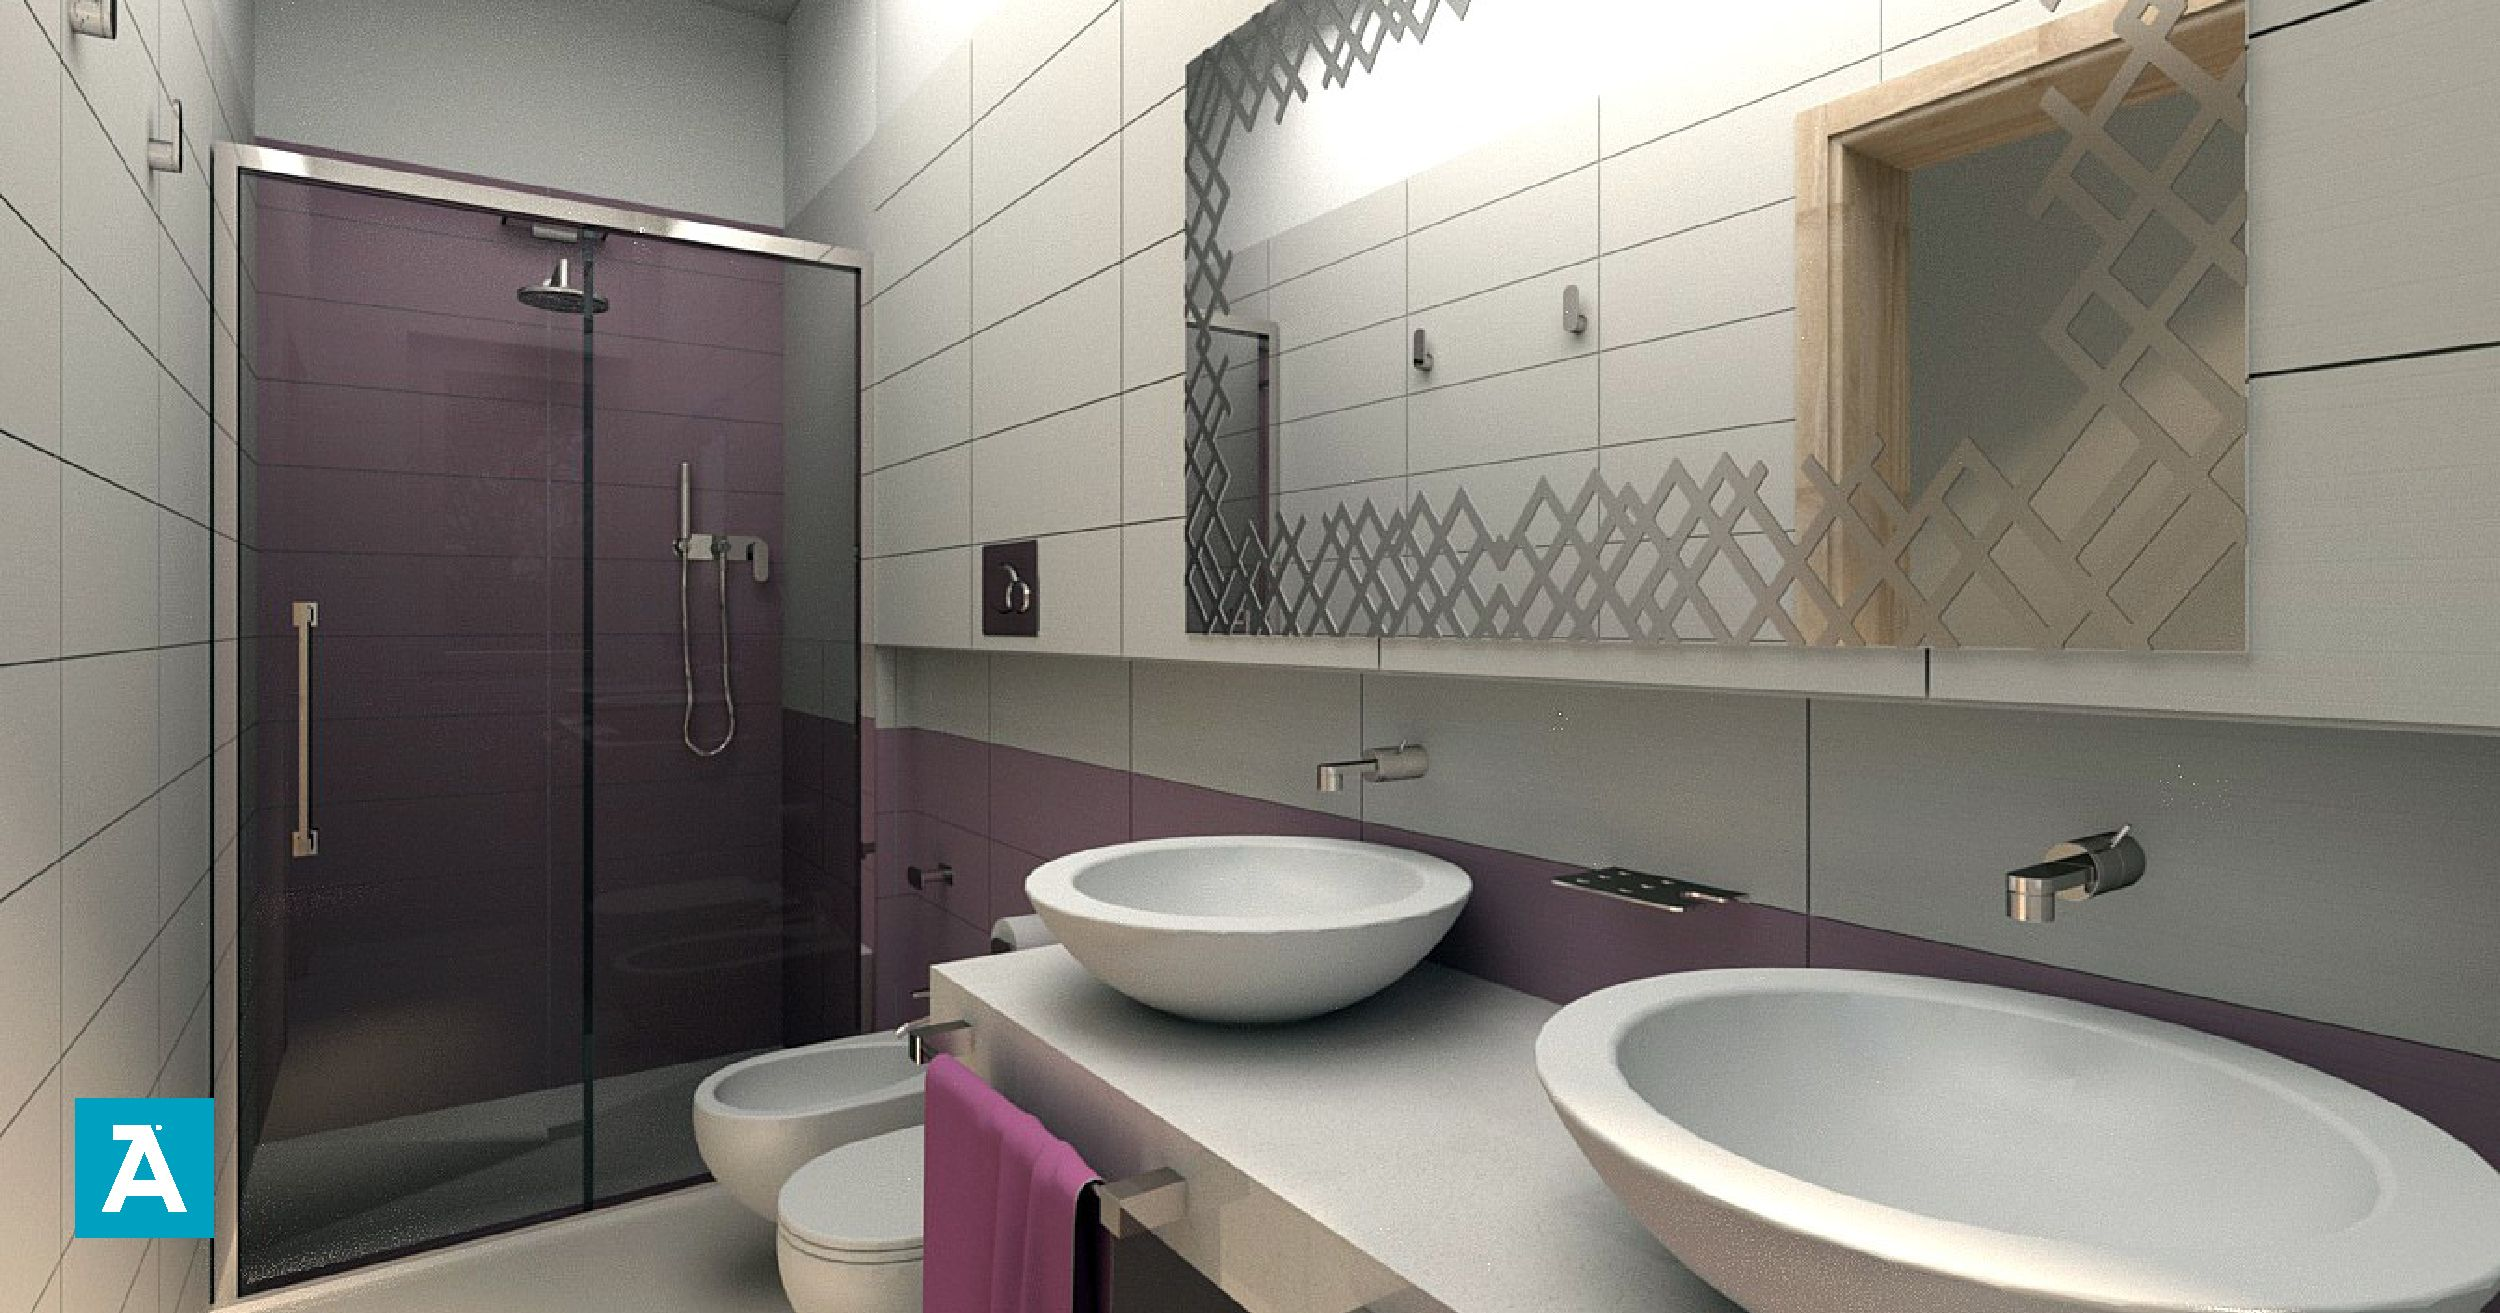 Only One Interior Design Software 3d To Realize Your